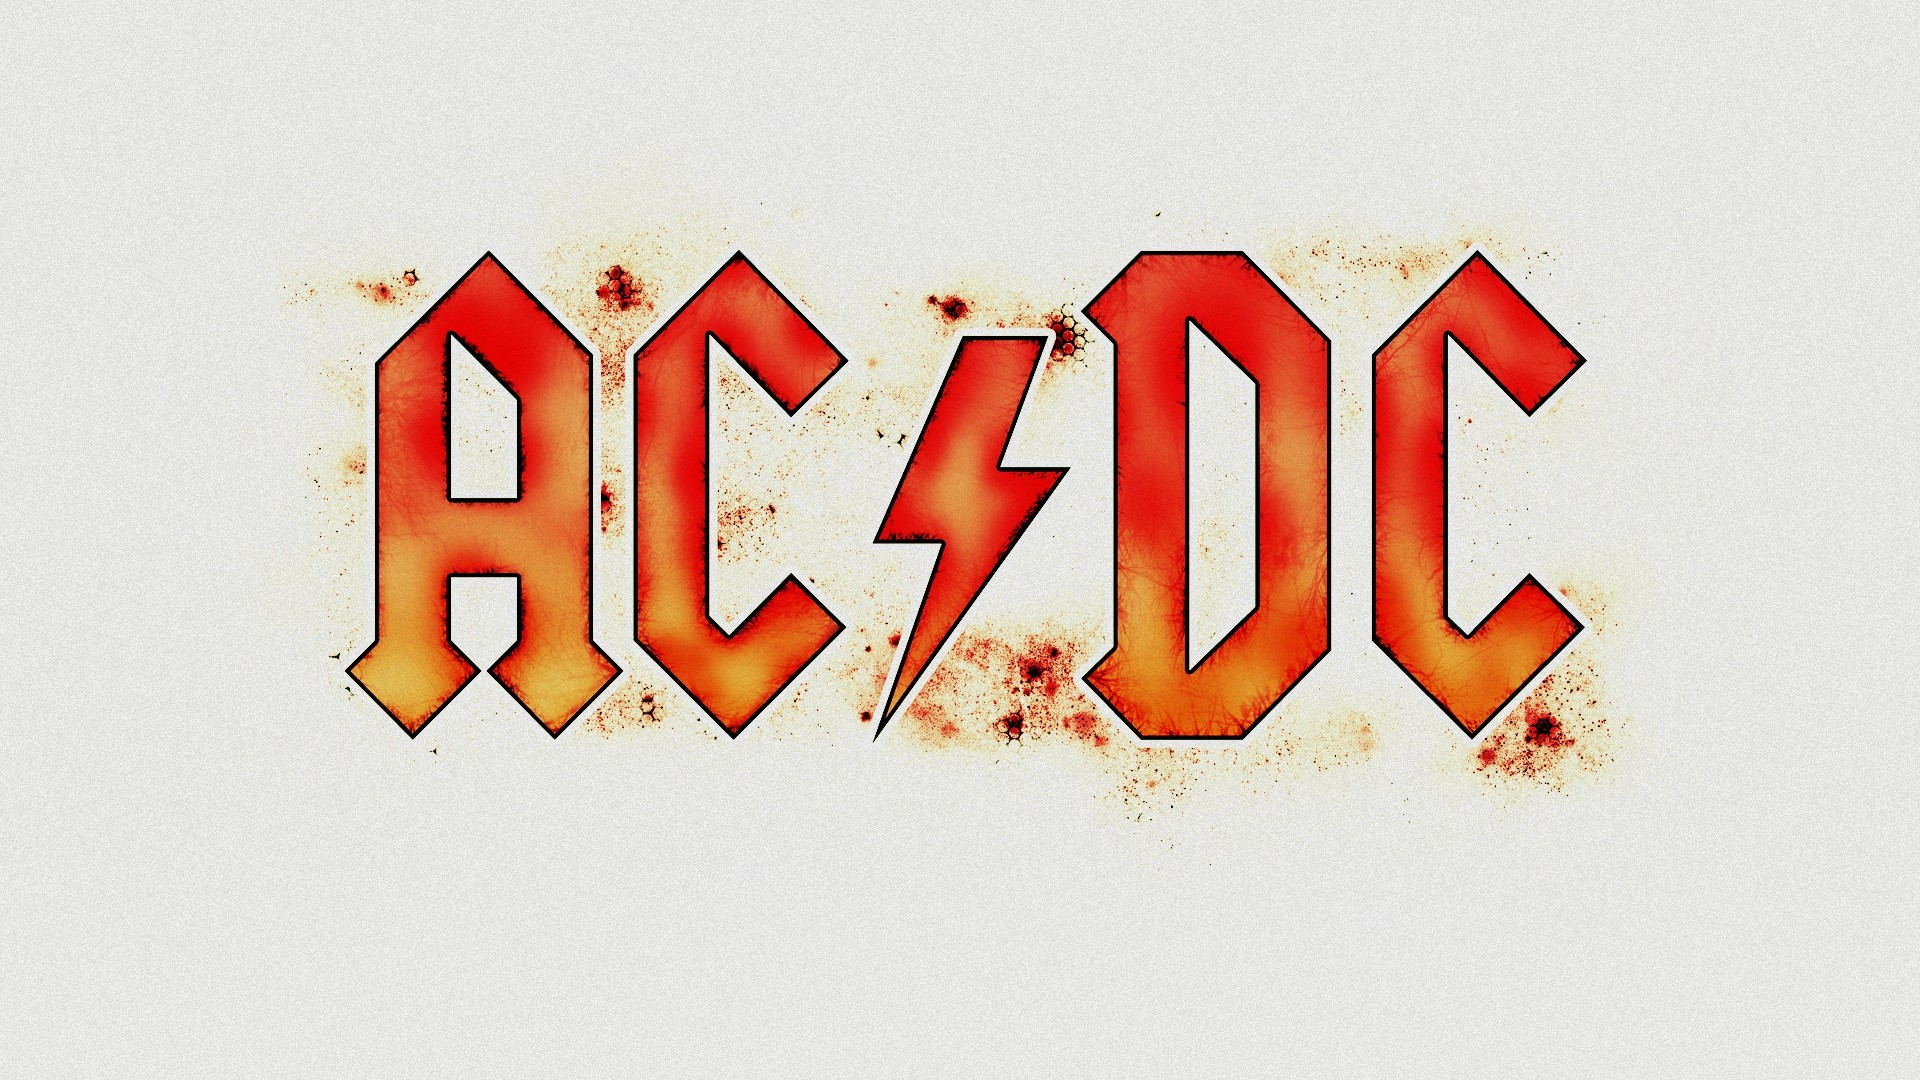 Wallpaper ac dc, acdc, music, hard rock